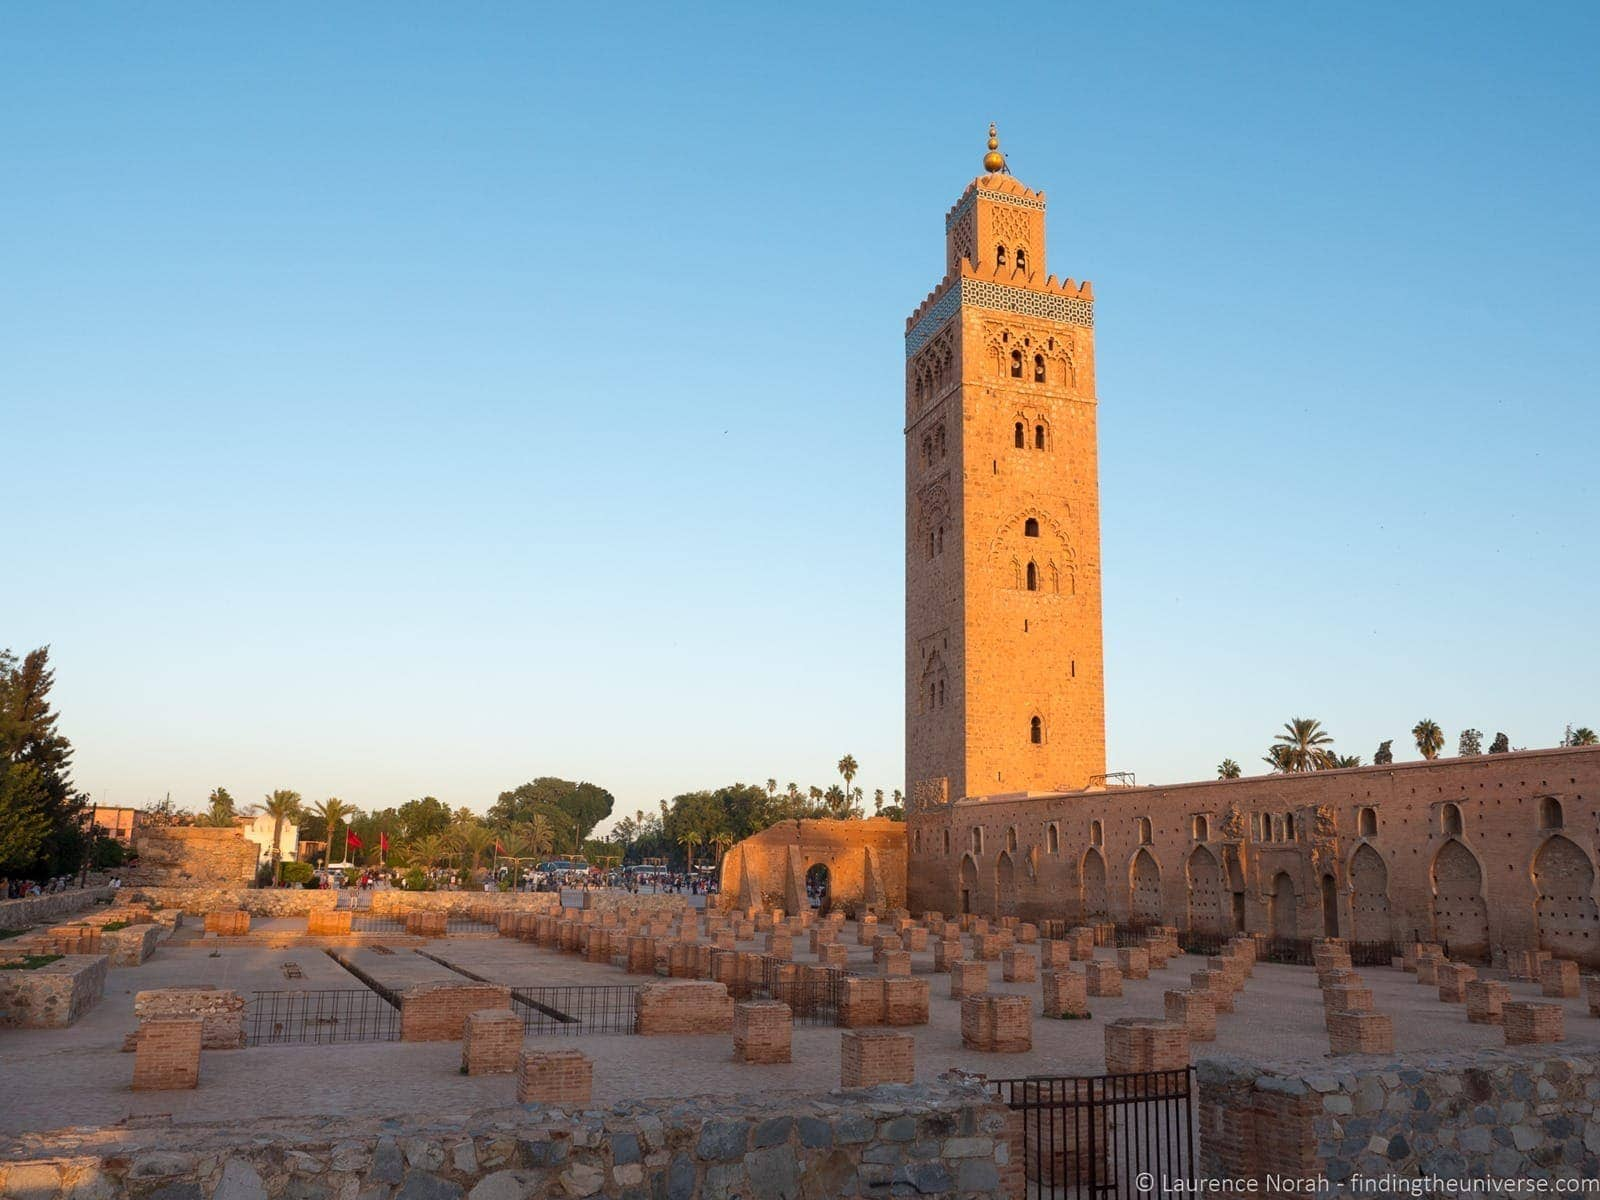 Marrakech mosque Koutoubia